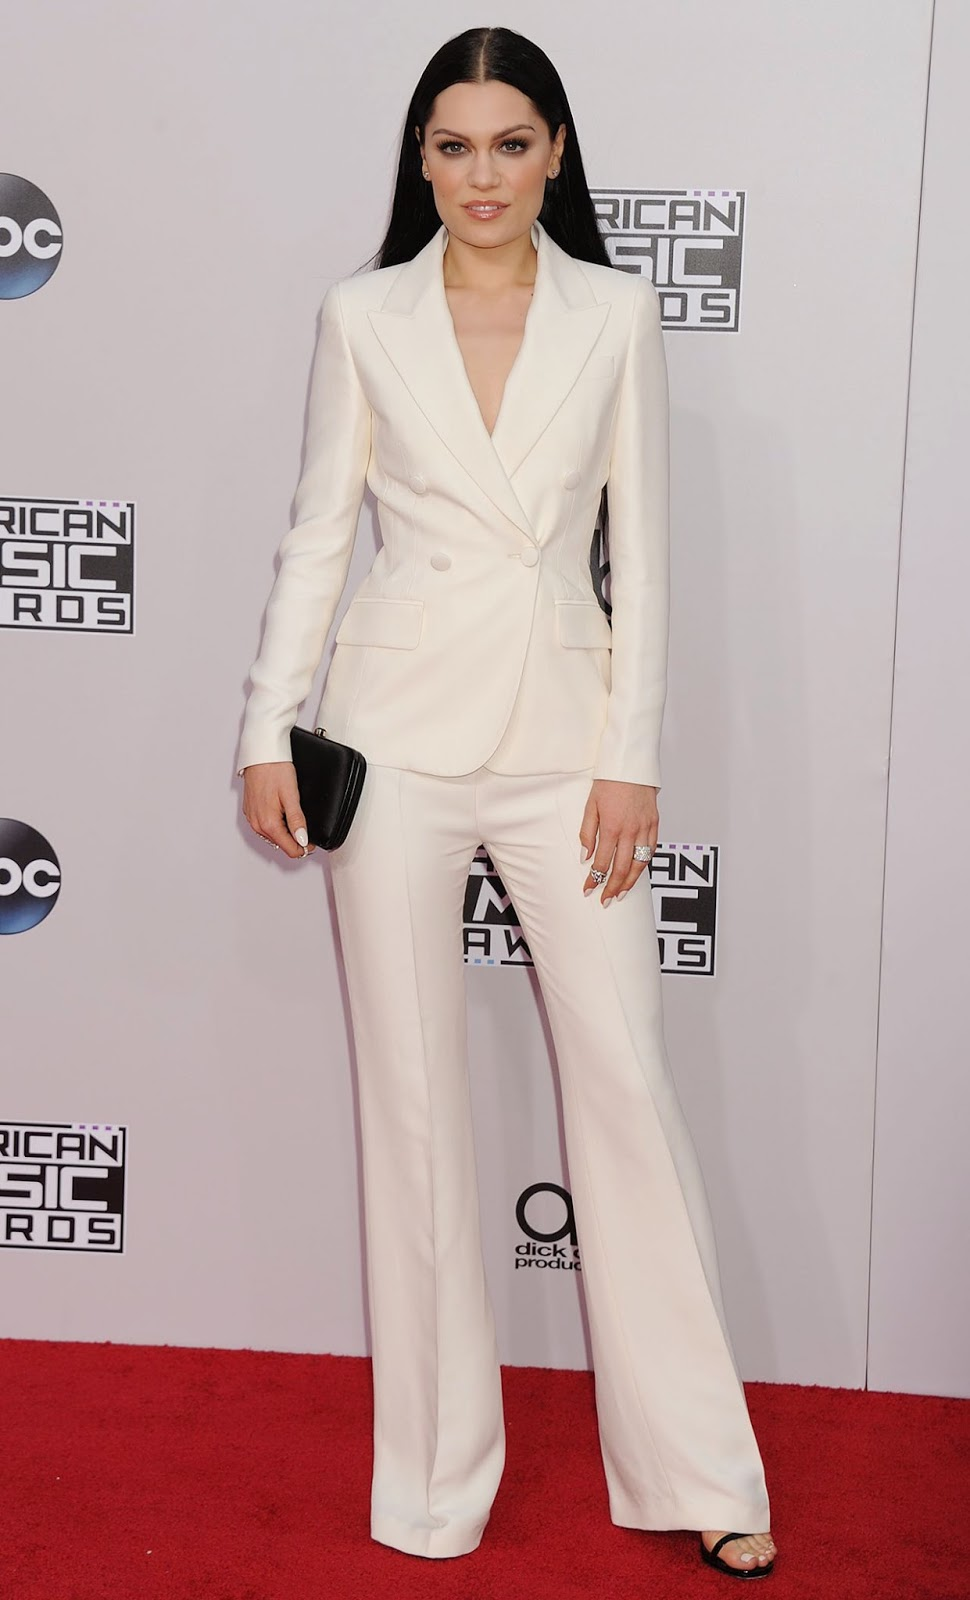 Jessie J - 2014 American Music Awards - Red Carpet